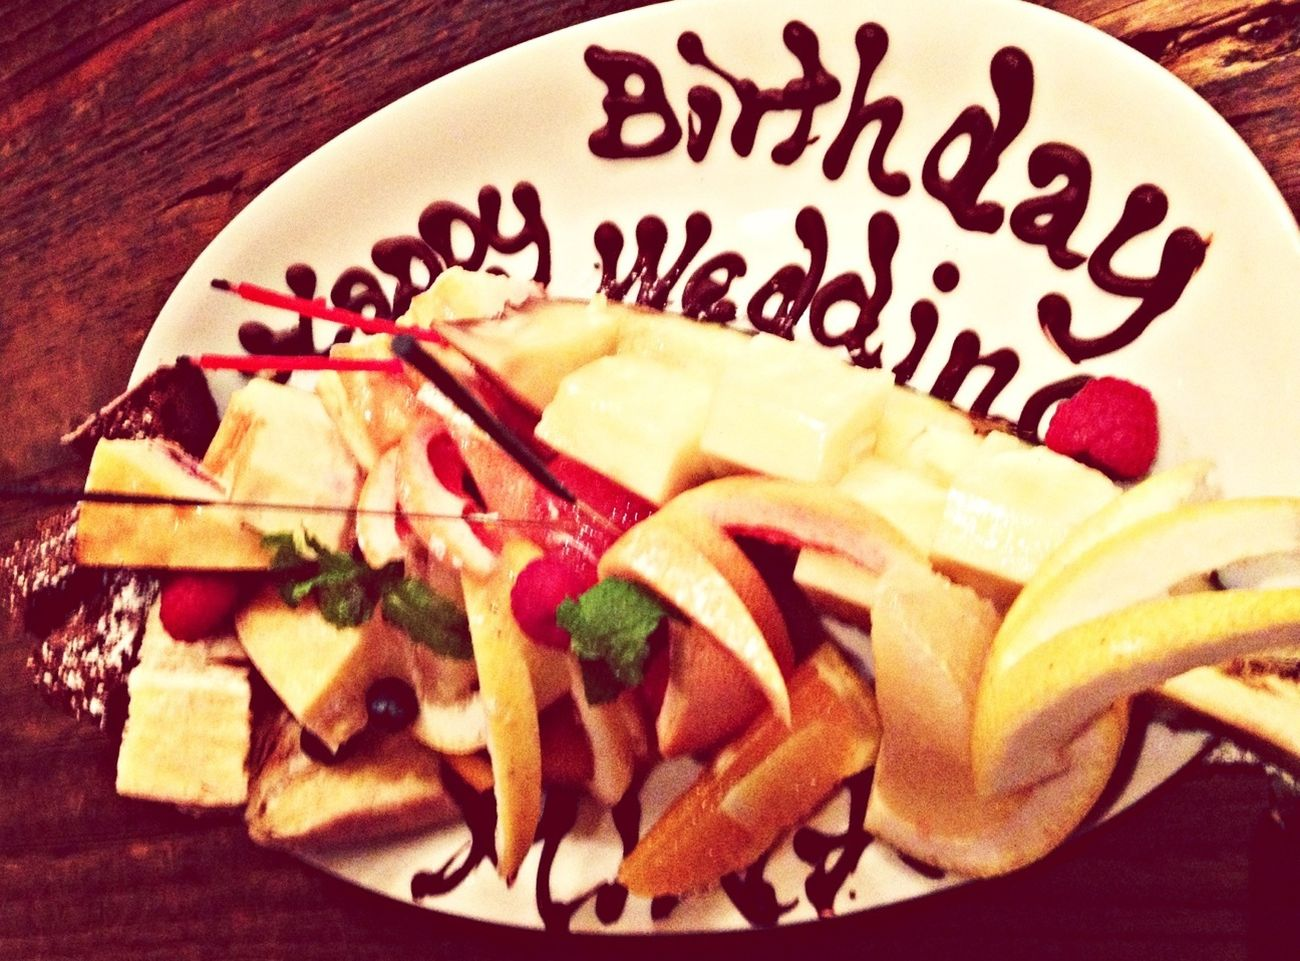 Food Wedding Happy Birthday!